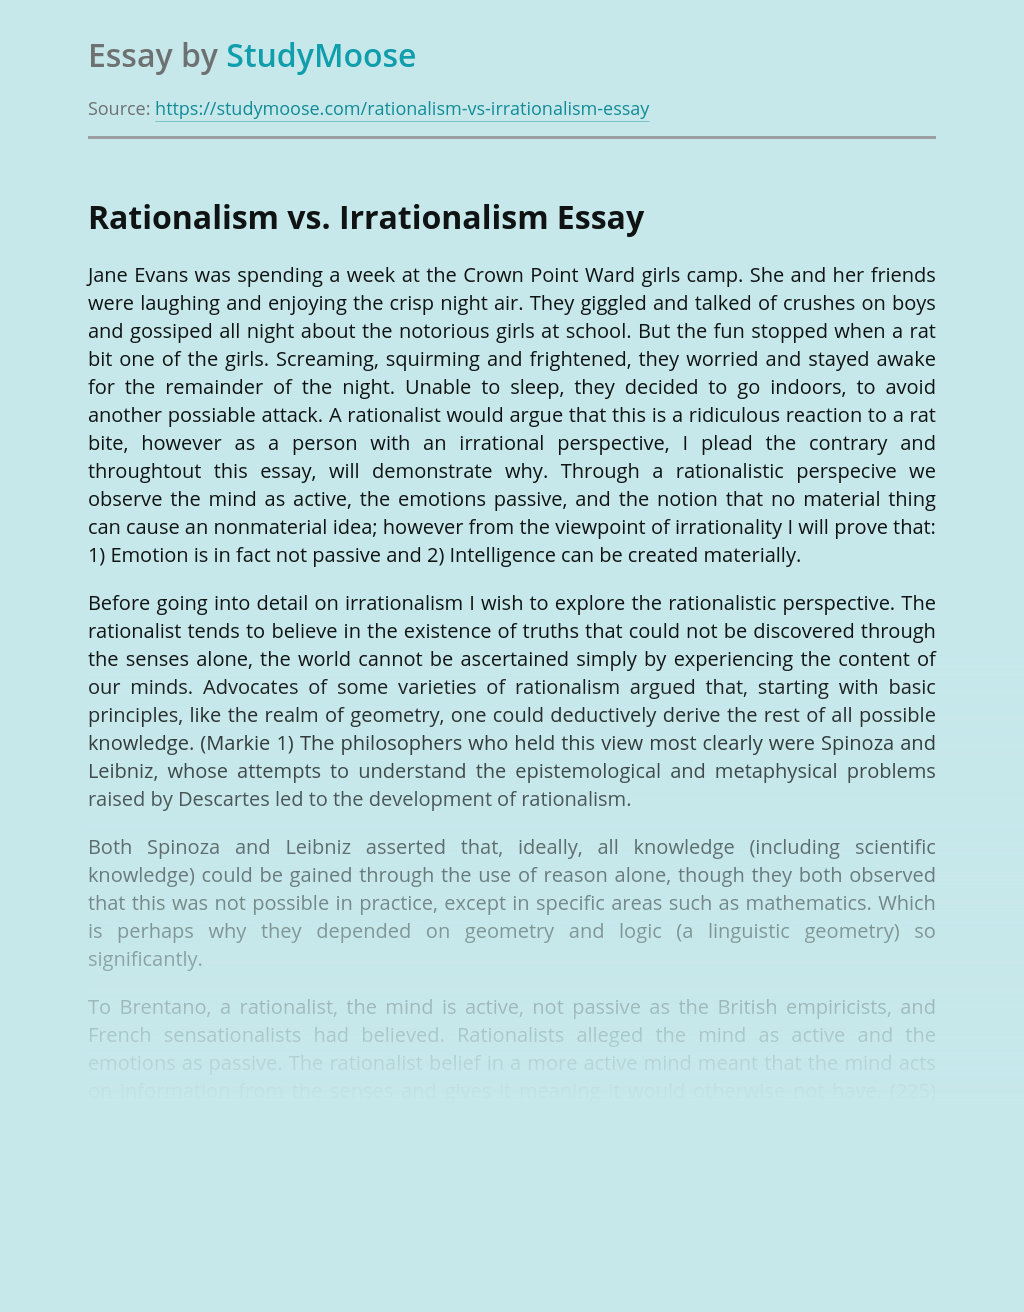 Rationalism vs. Irrationalism